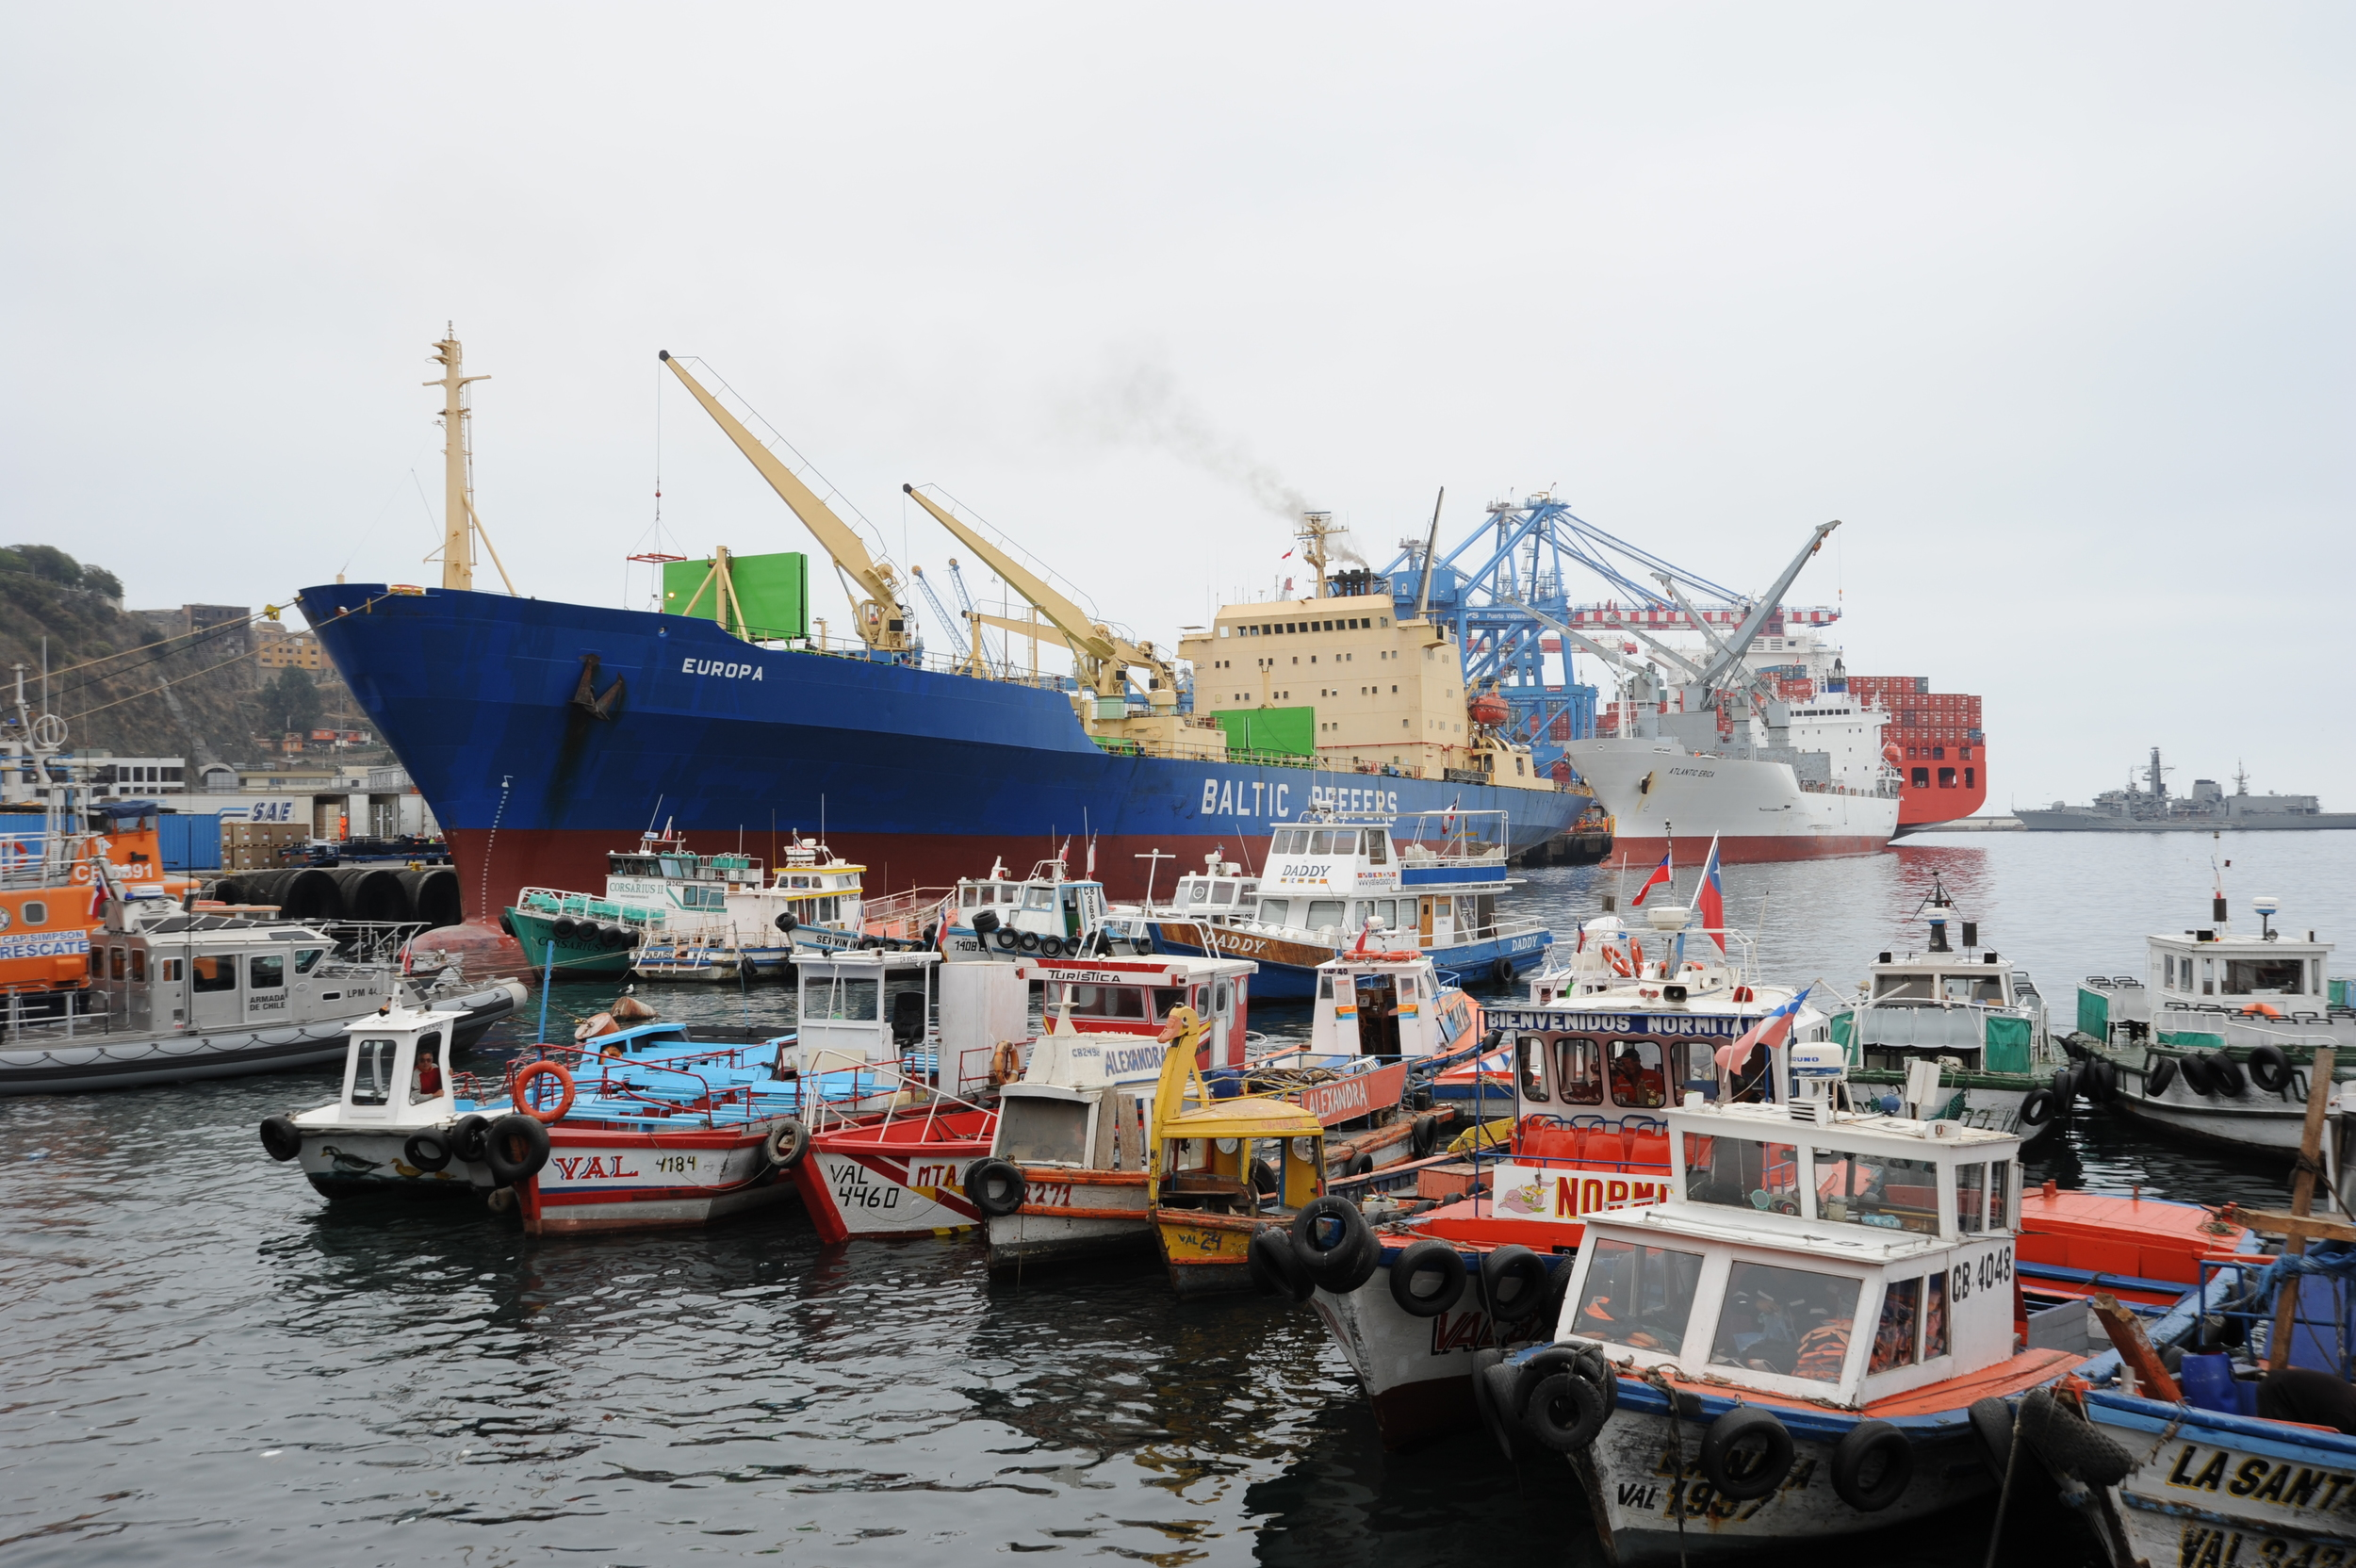 Harbour at Valparaiso, Chile, 27 Mar 2012